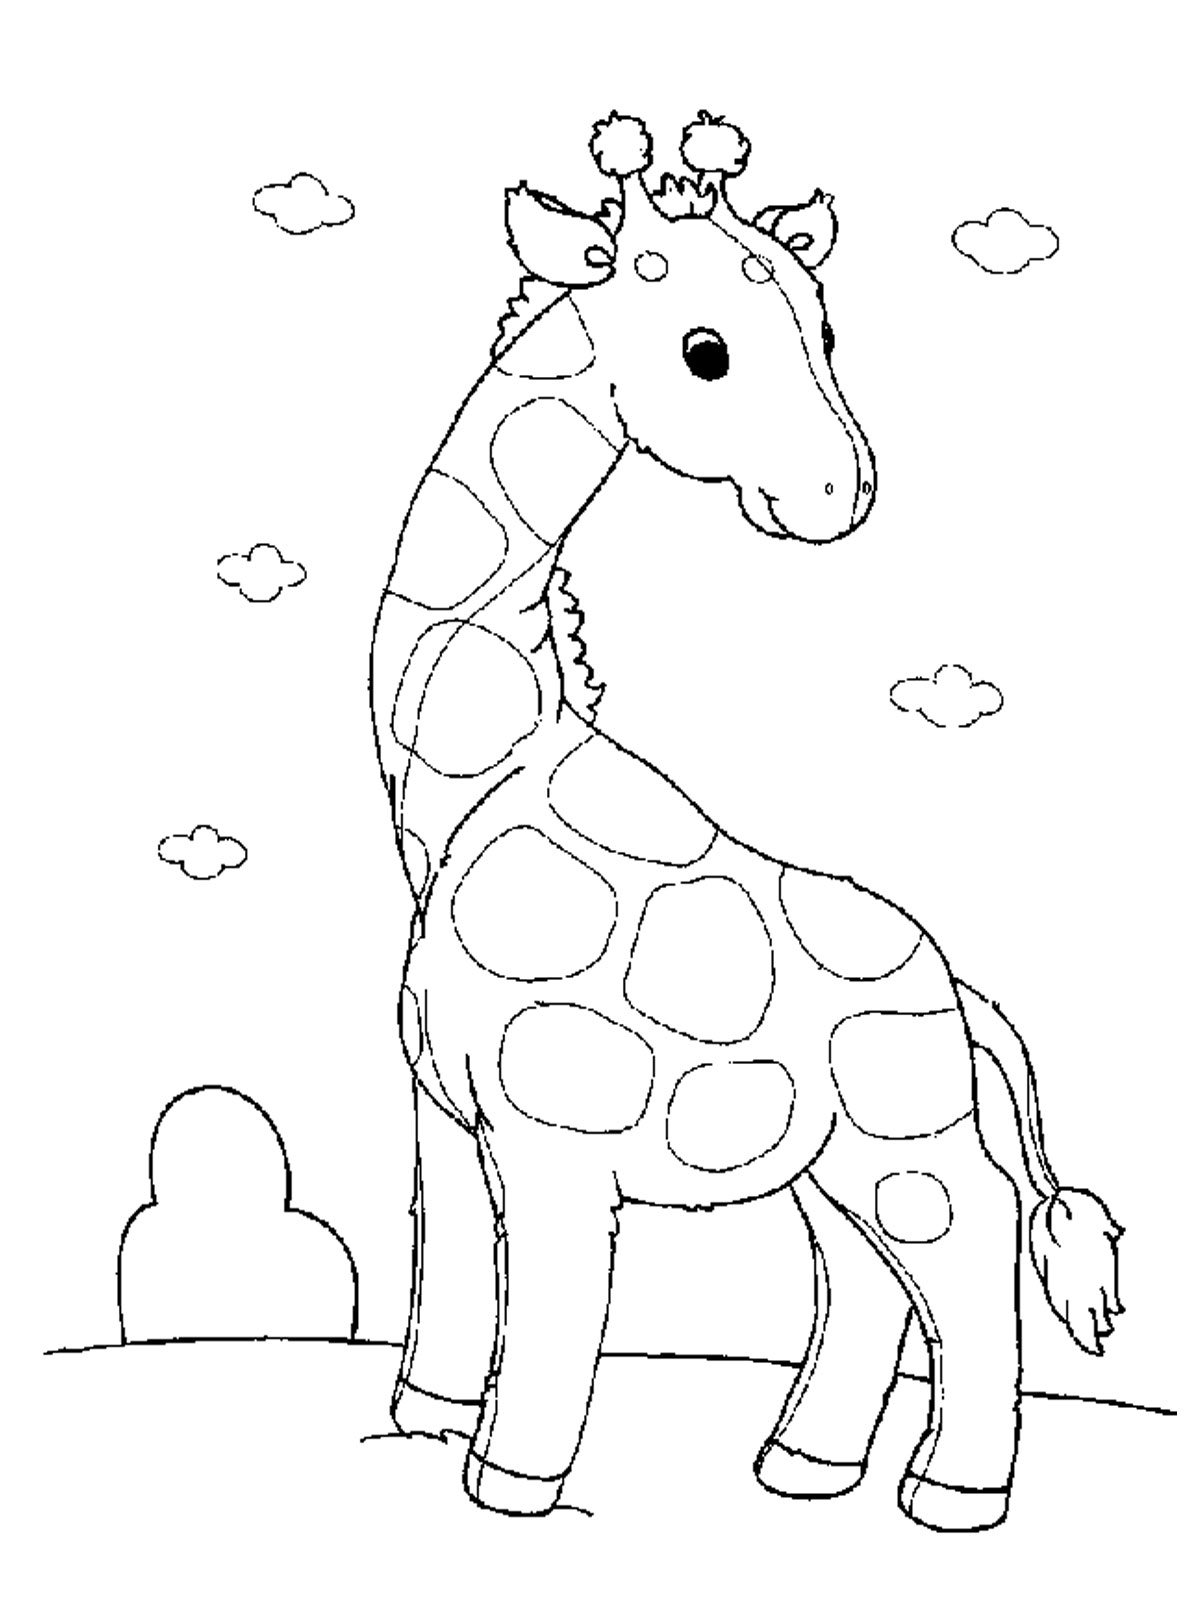 Vertebrate Animals Coloring Pages : Animal coloring pages kids